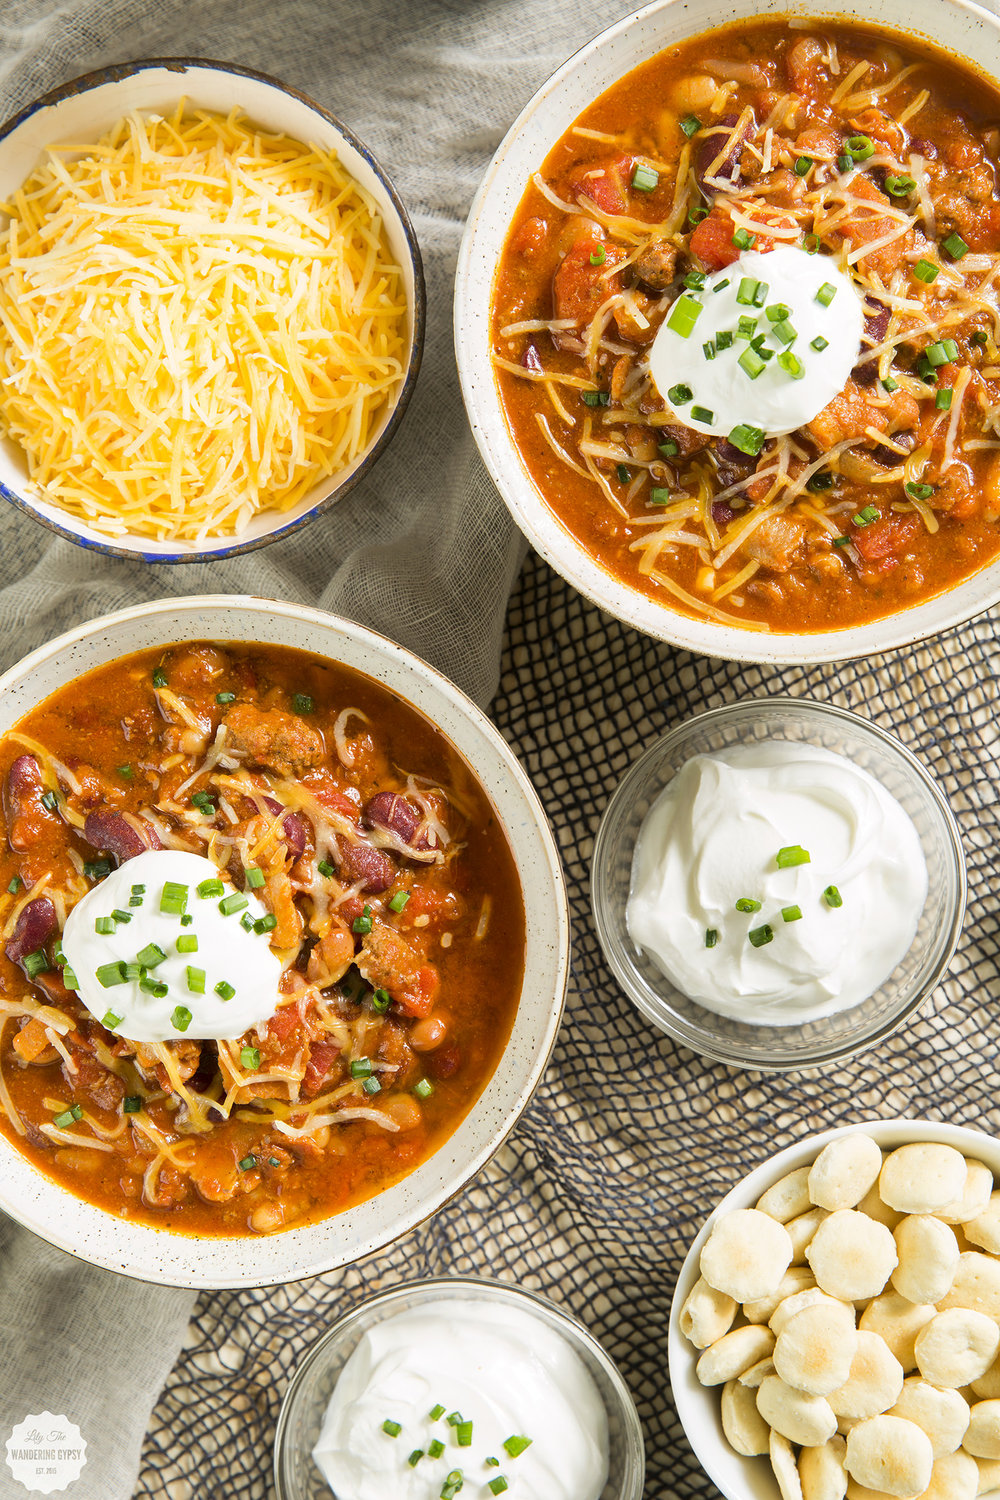 Learn more about this amazing chili recipe, using one special ingredient.